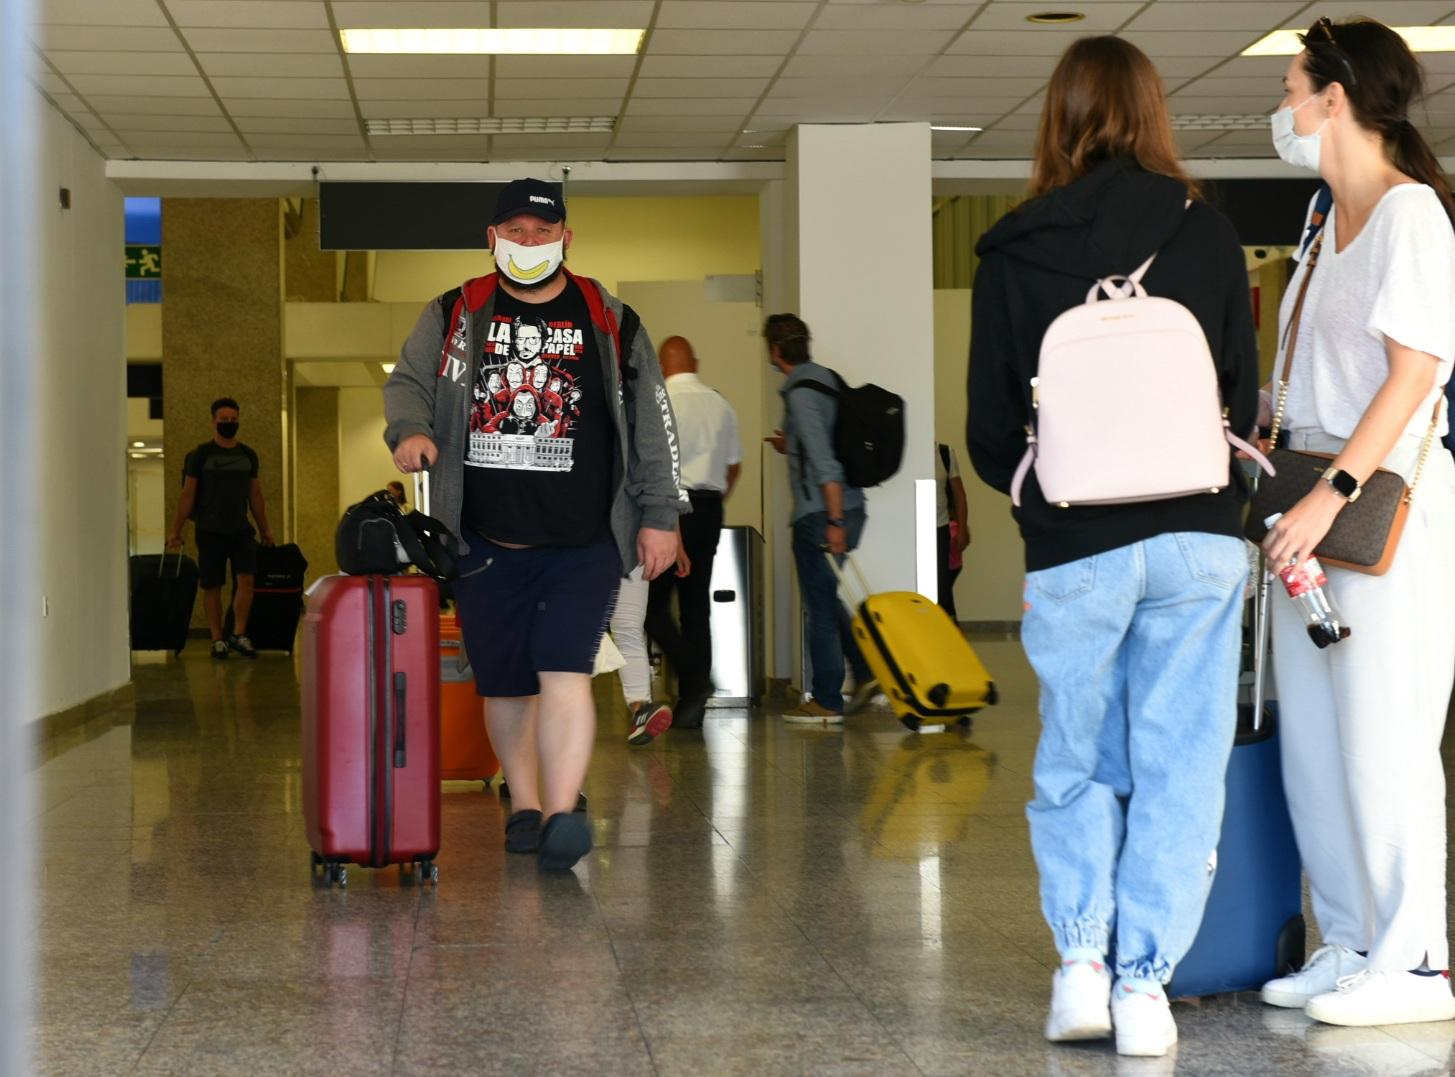 Passengers have to wear masks when they walk through the terminal building. Photo: Chris Sant Fournier